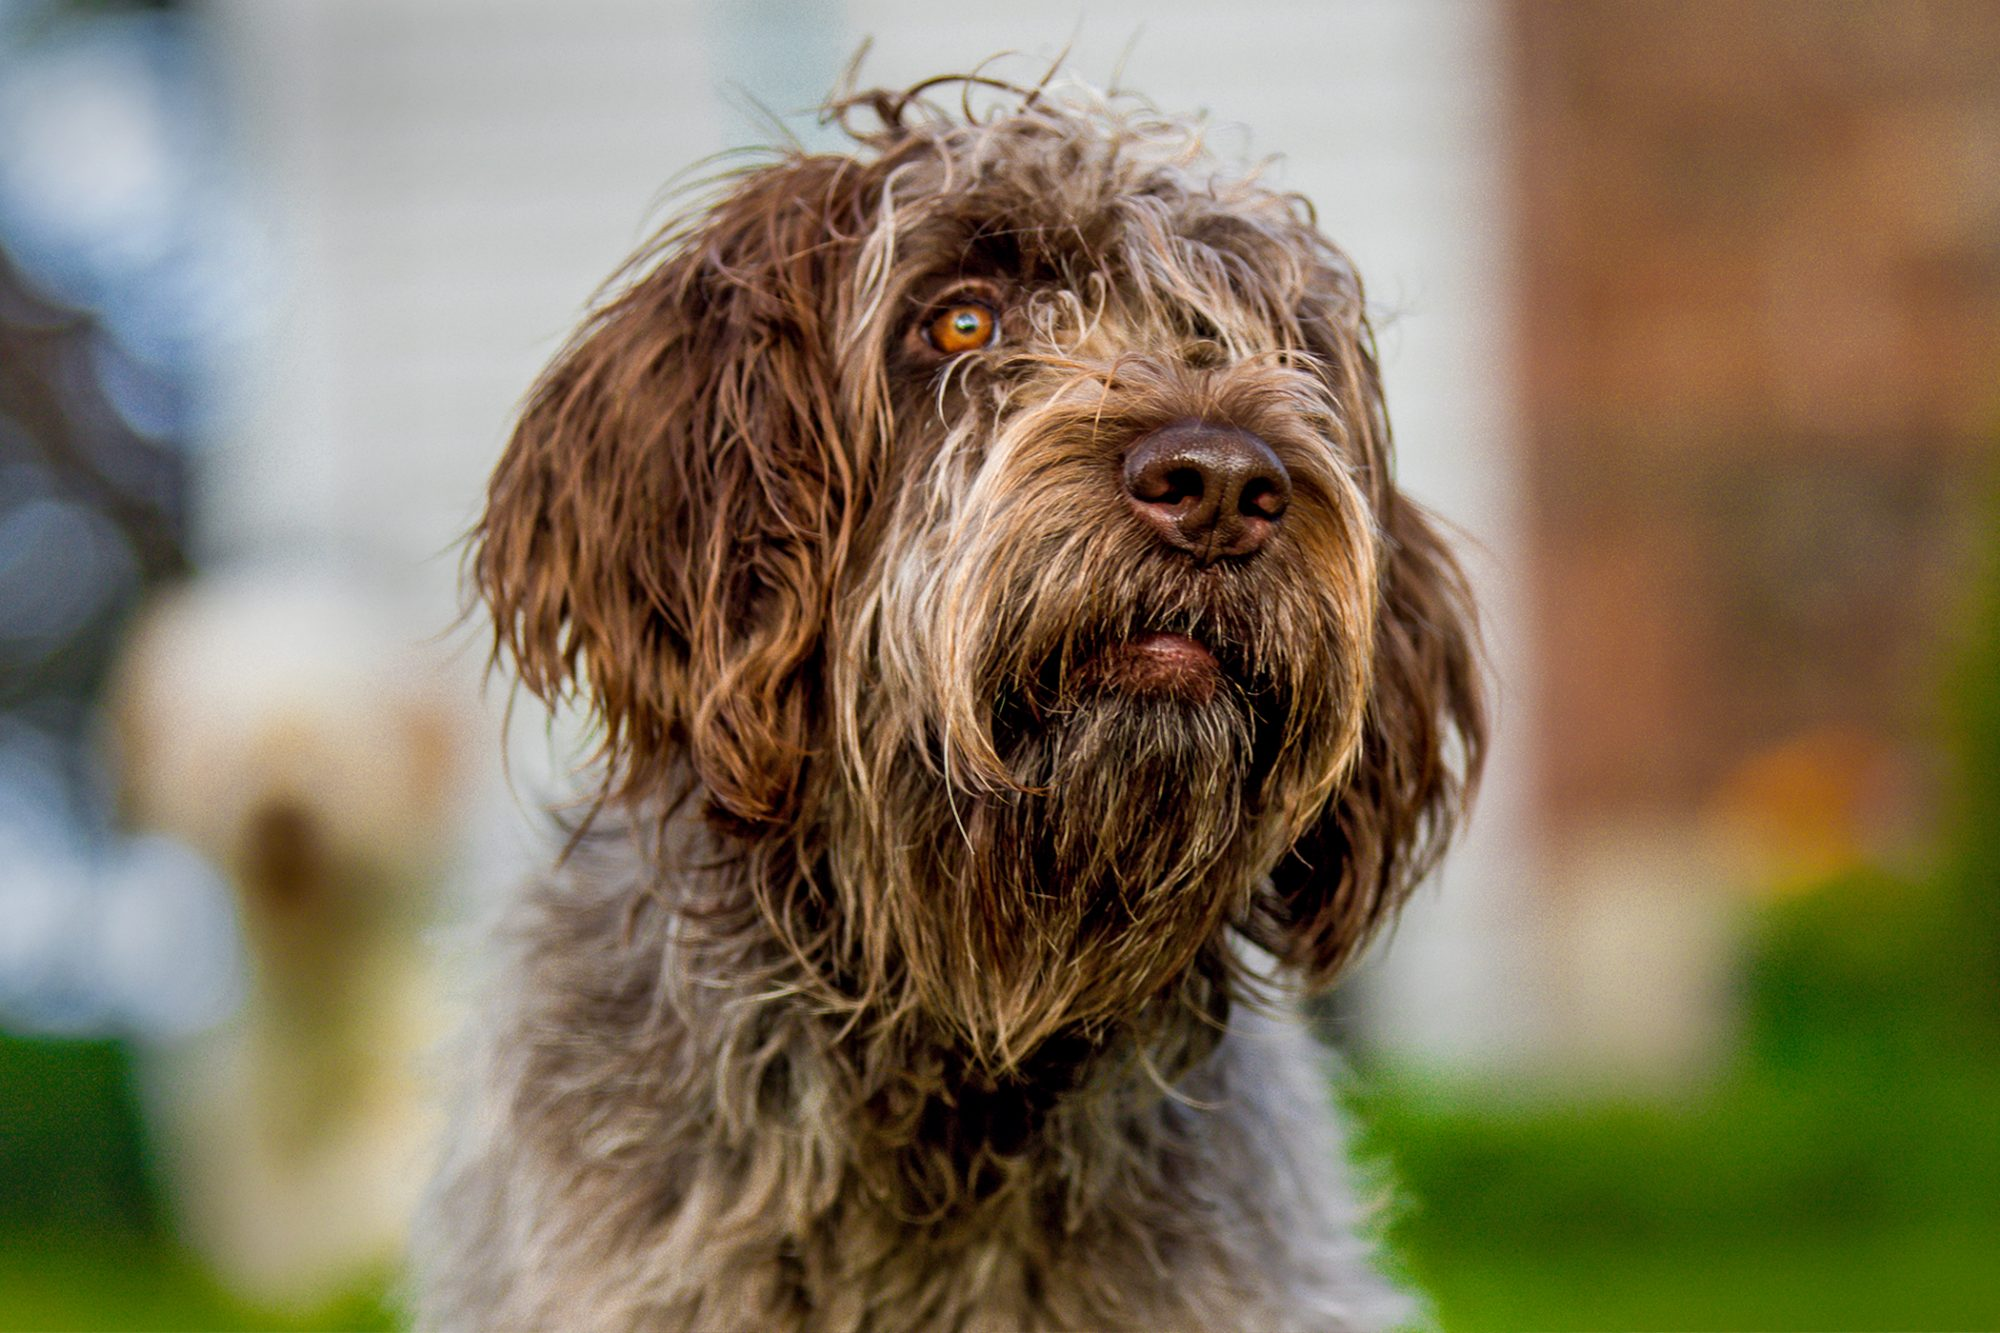 Shaggy brown wirehaired pointing griffon porrait with brick wall in blurred background